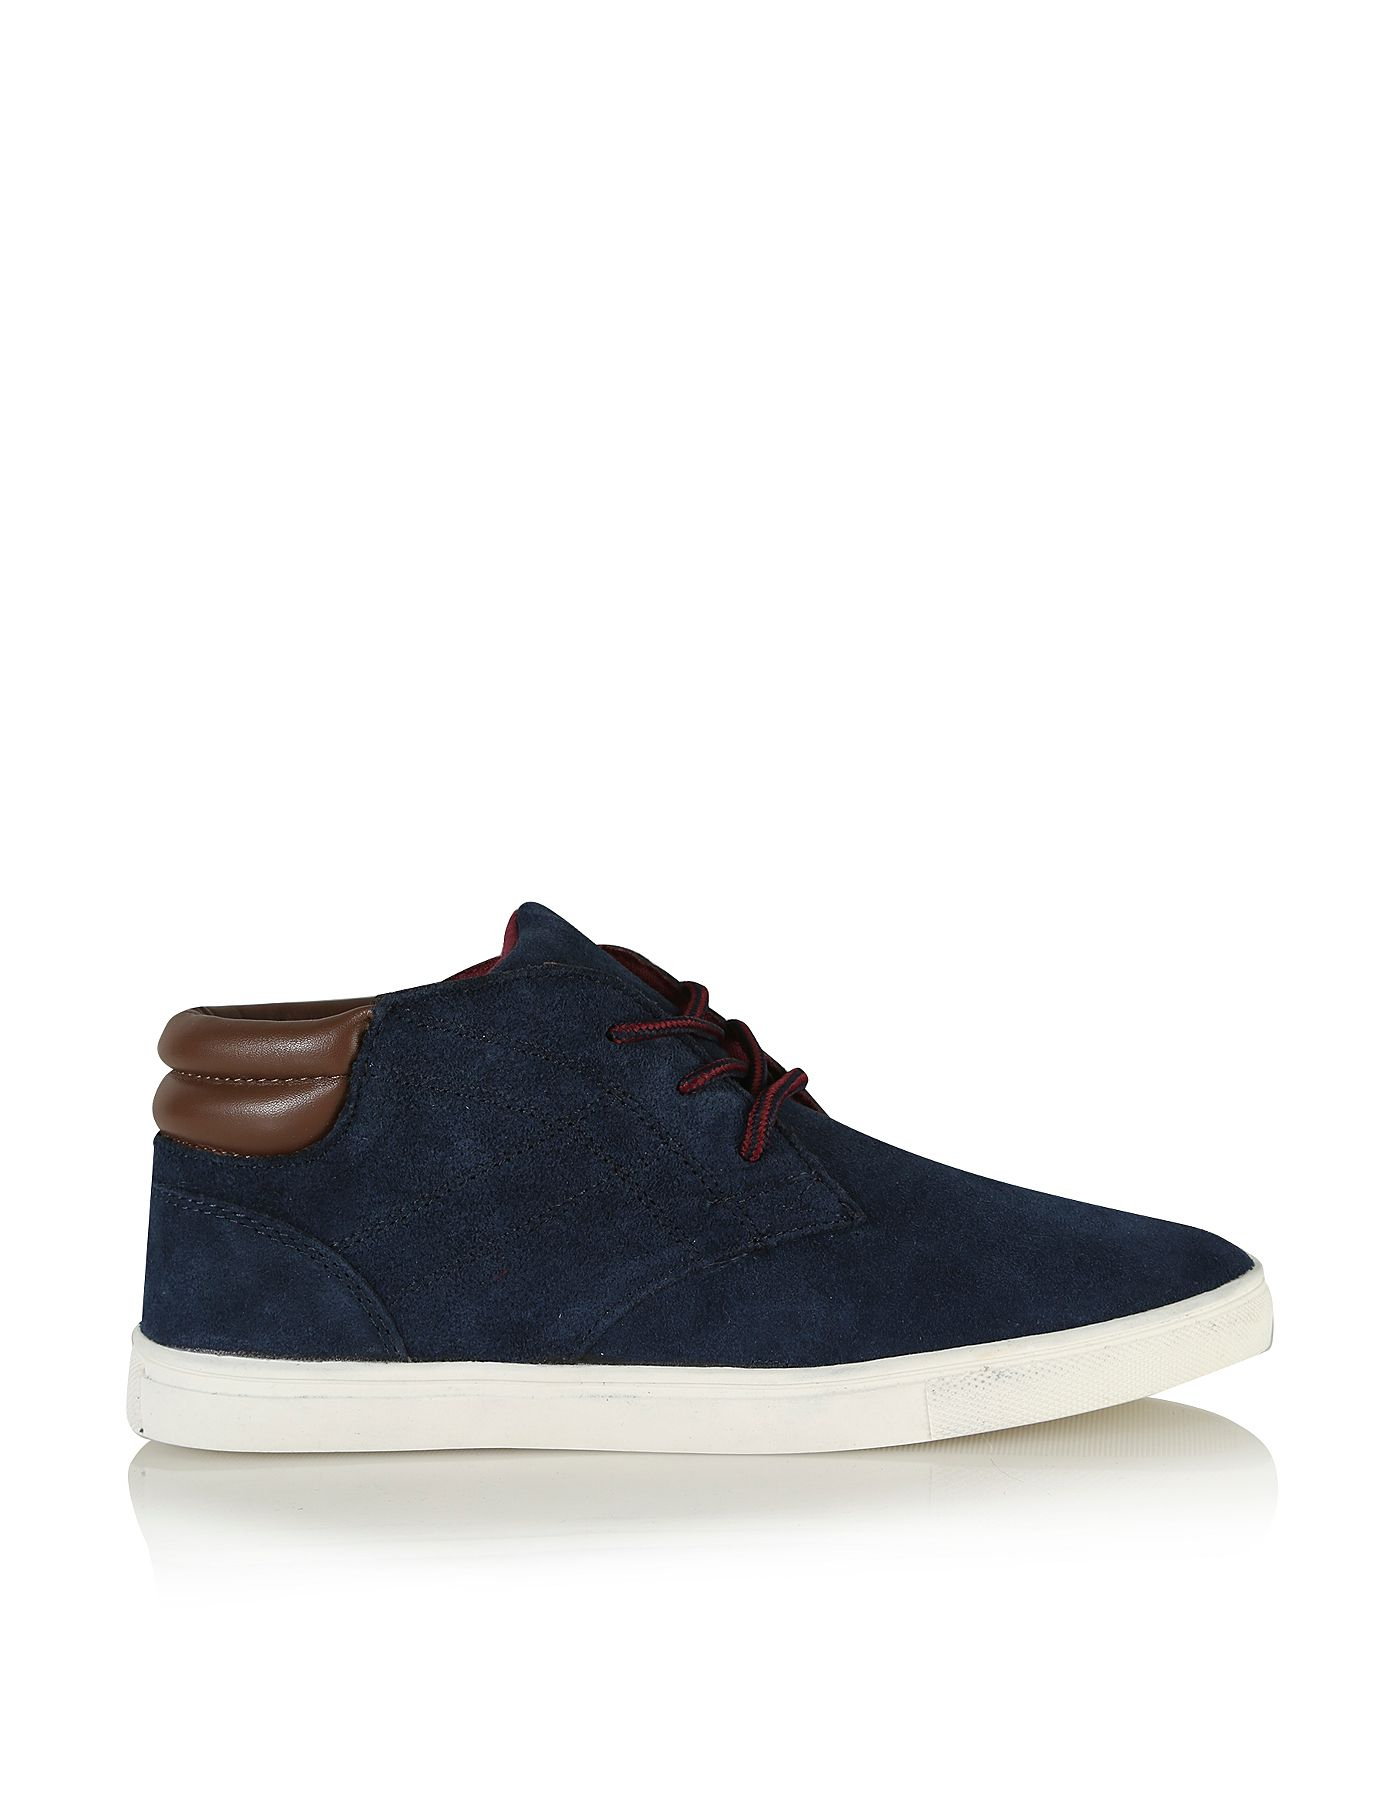 Desert Boot Trainers   Boys   George at